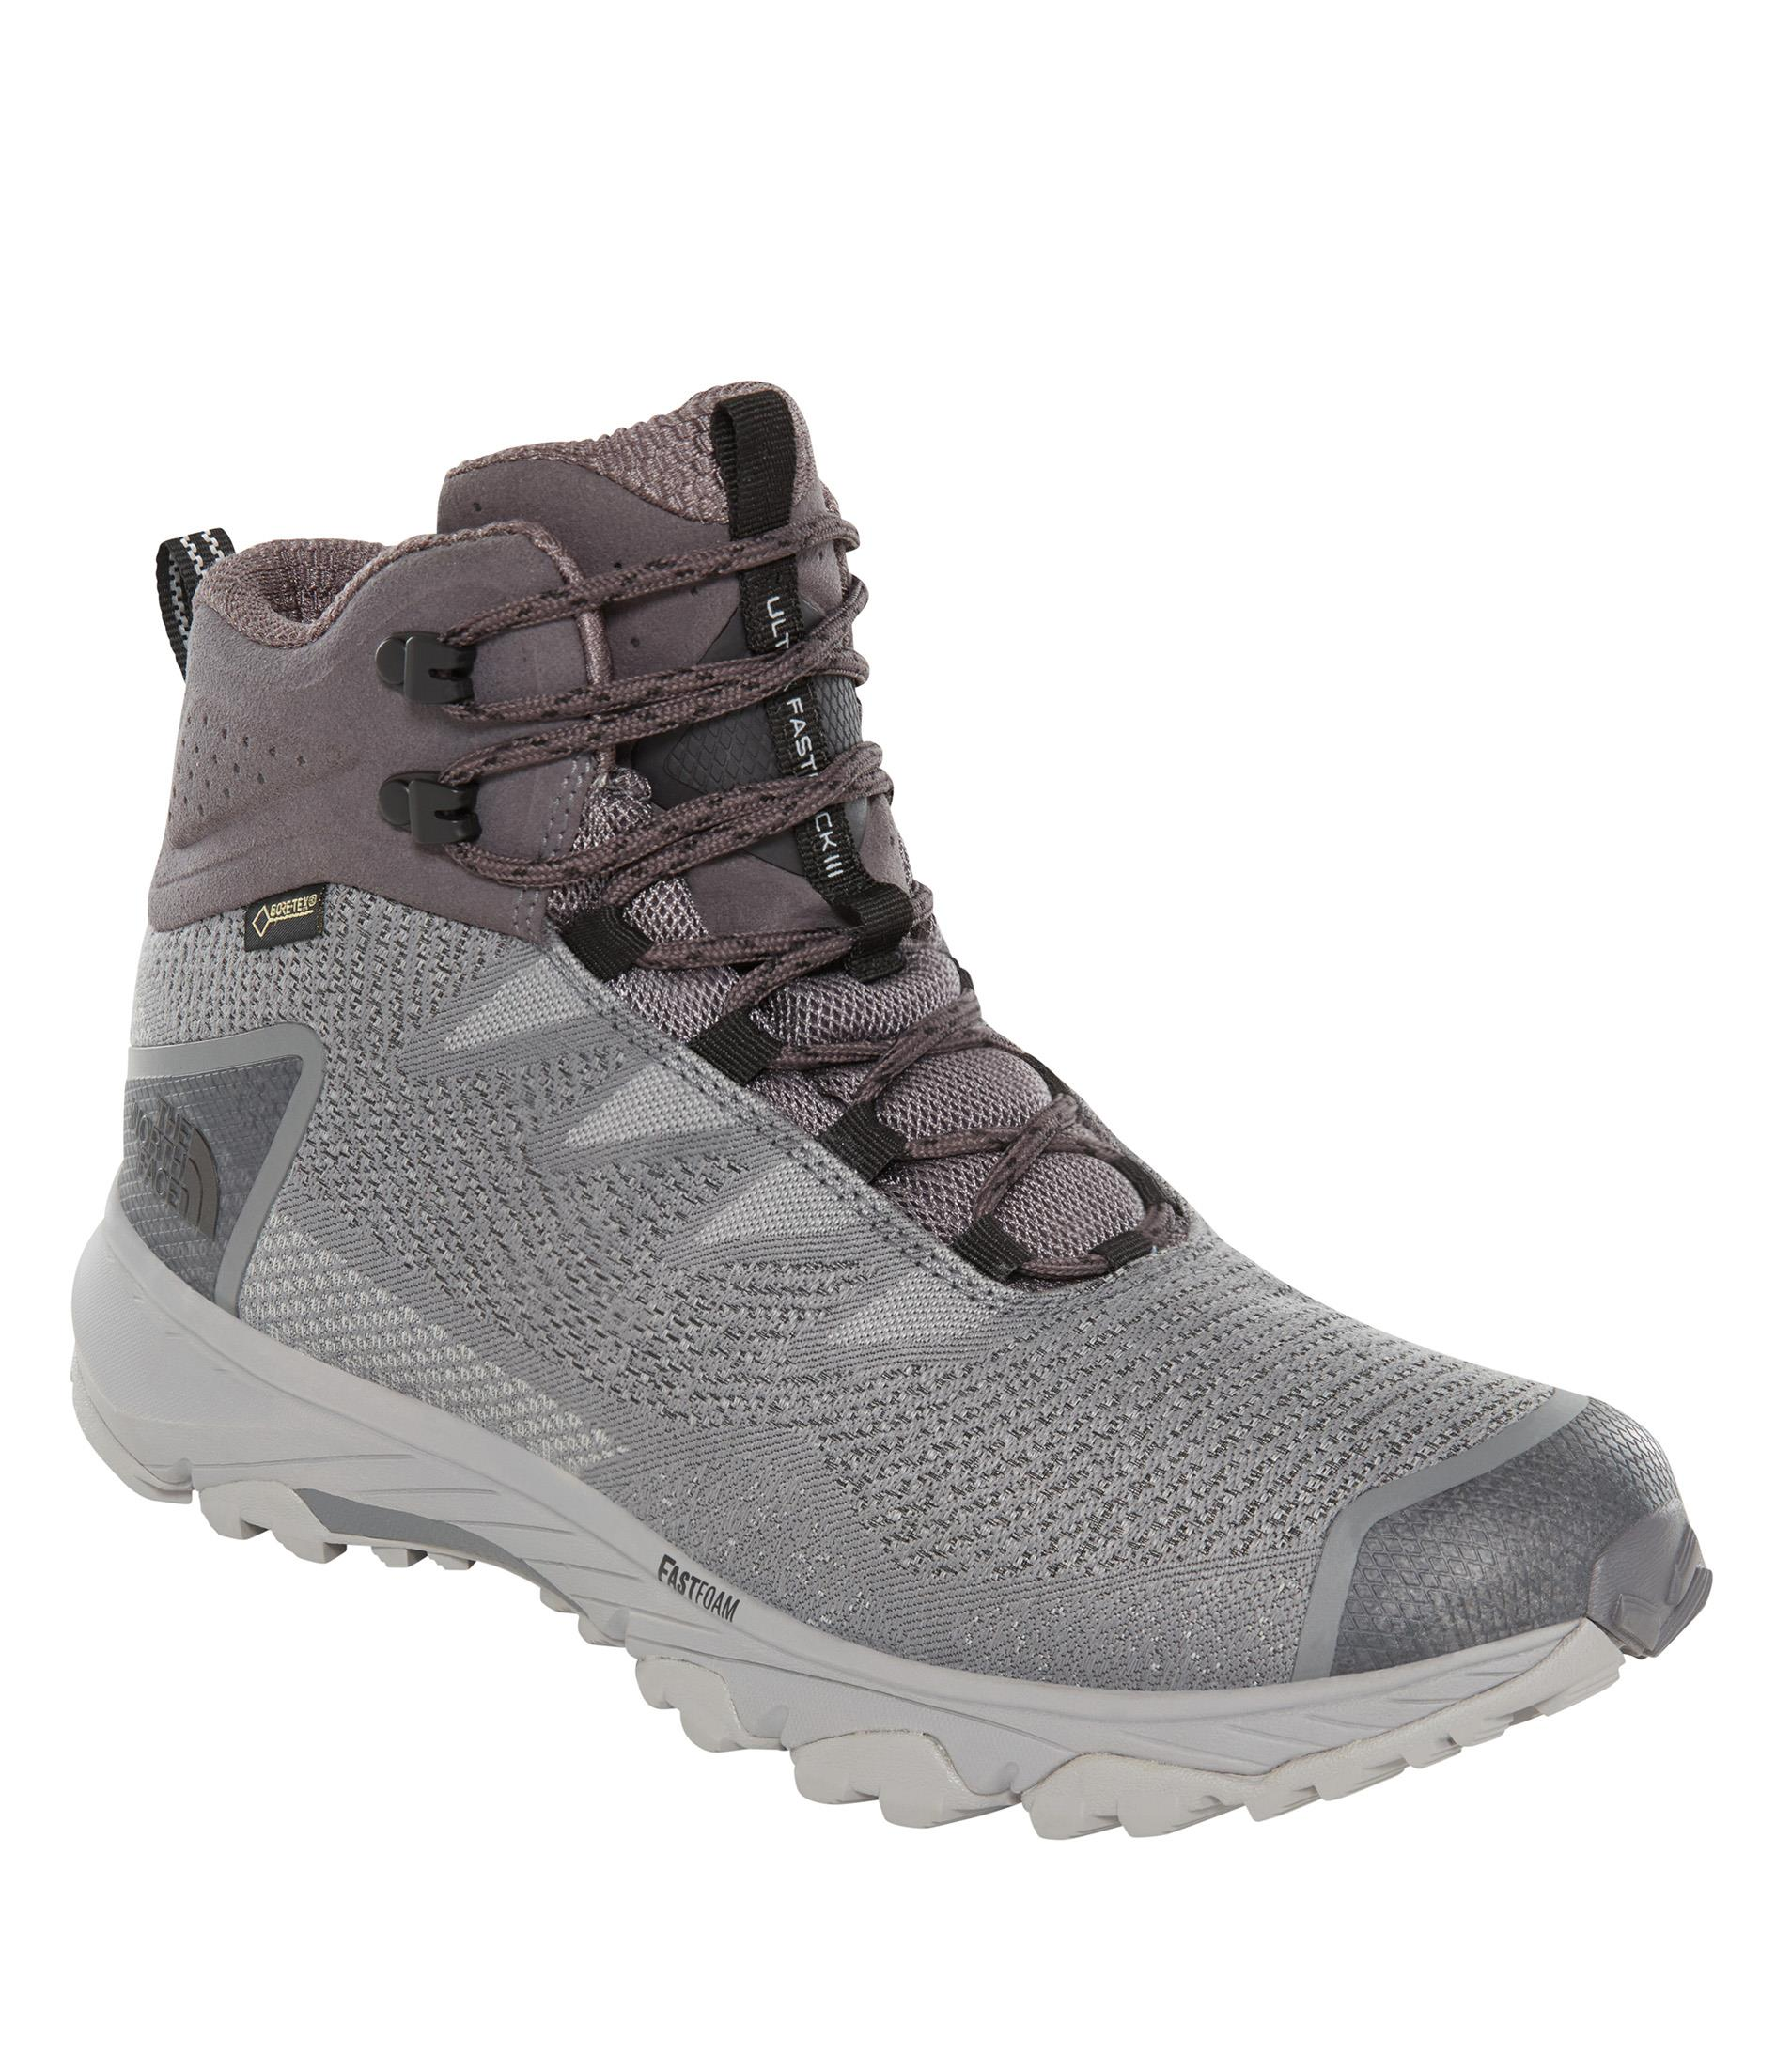 The North Face M Ultra Fastpack İii Mid Gtx (Woven) Nf0A3Mkuc1J1 Bot